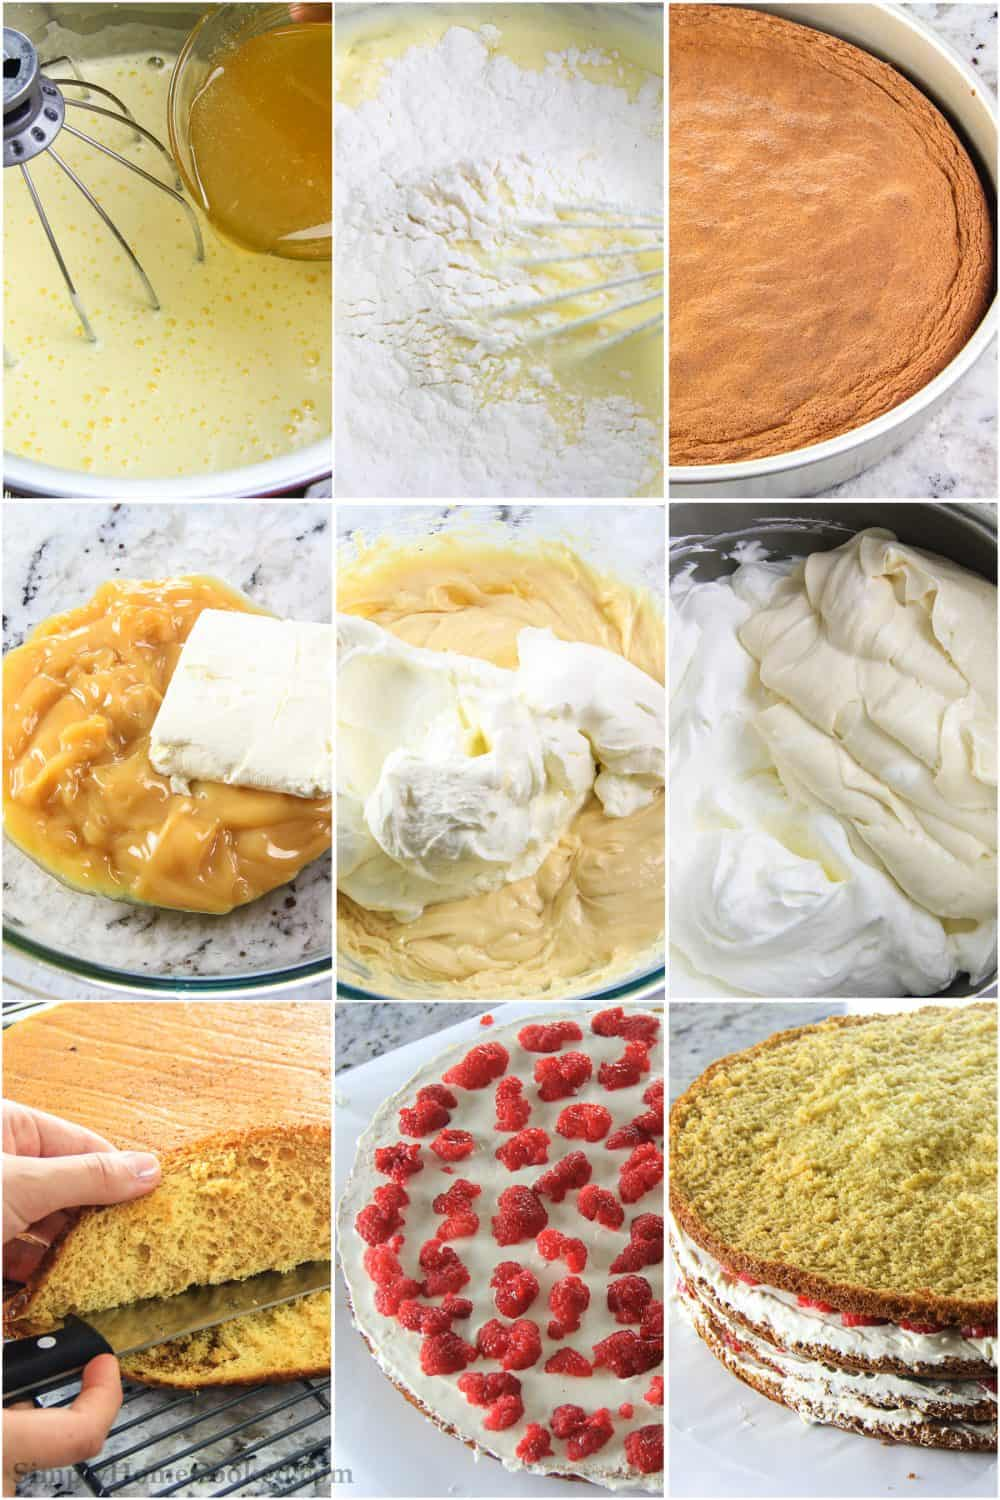 Photo collage of the process of making the raspberry cake and layering it to serve